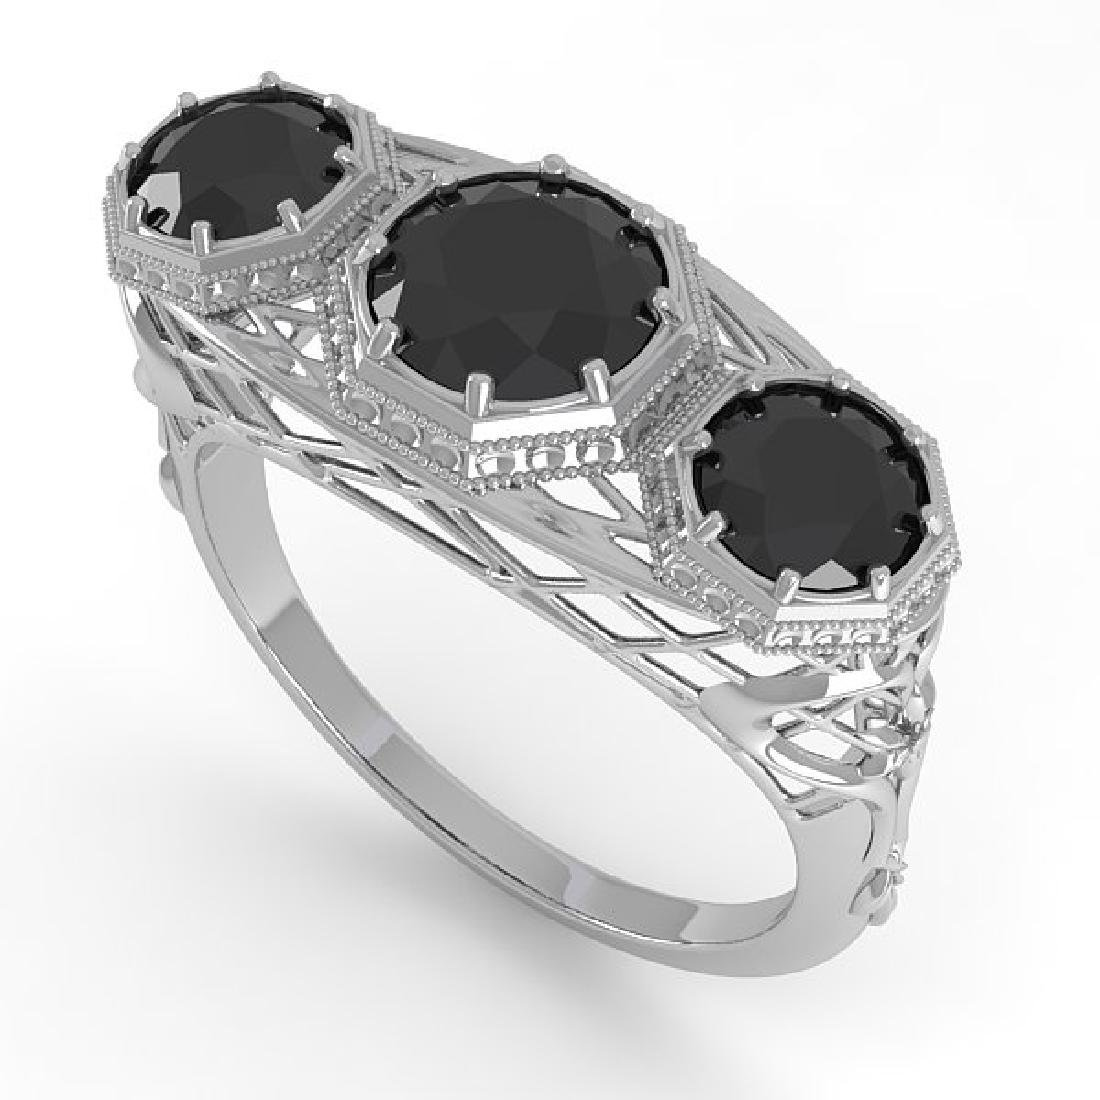 2 CTW Black Diamond Ring 14K White Gold - 2